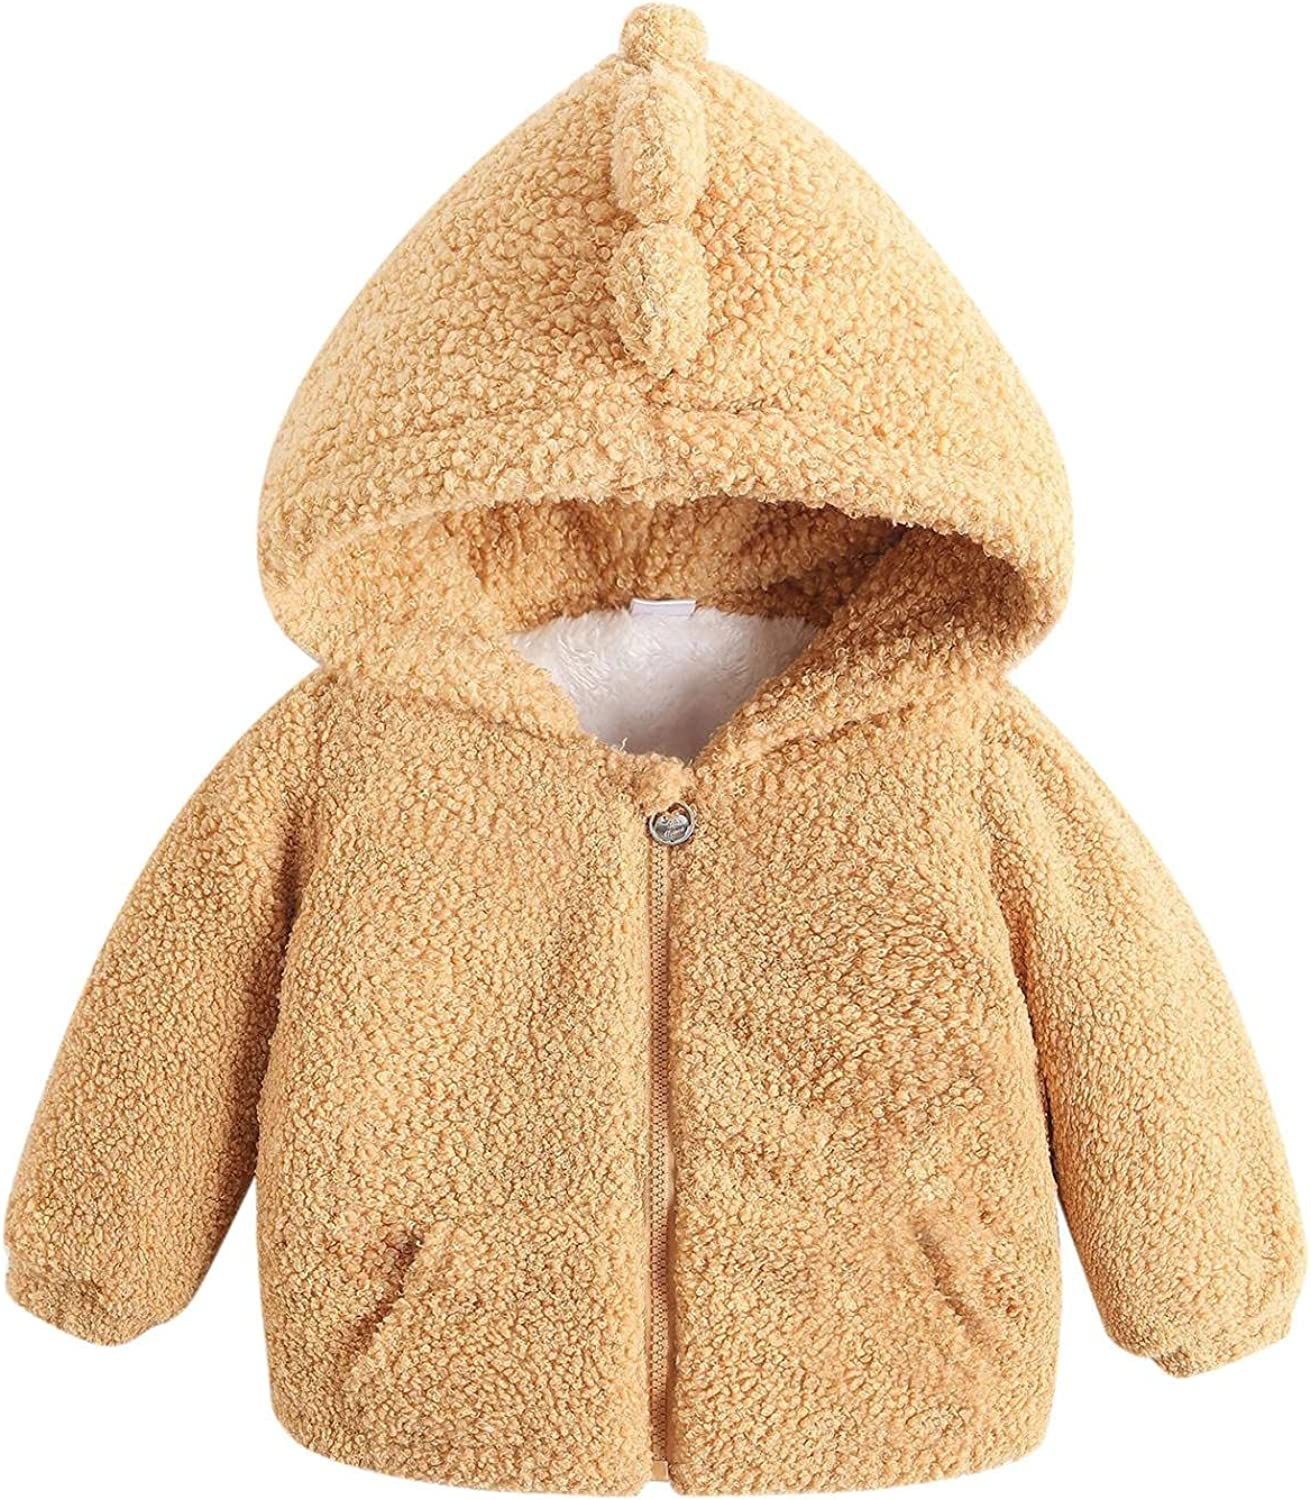 IKFIVQD Portland Mall Toddler Kids Baby 2021 spring and summer new Fleece Hooded Thick Winter Coat Autumn